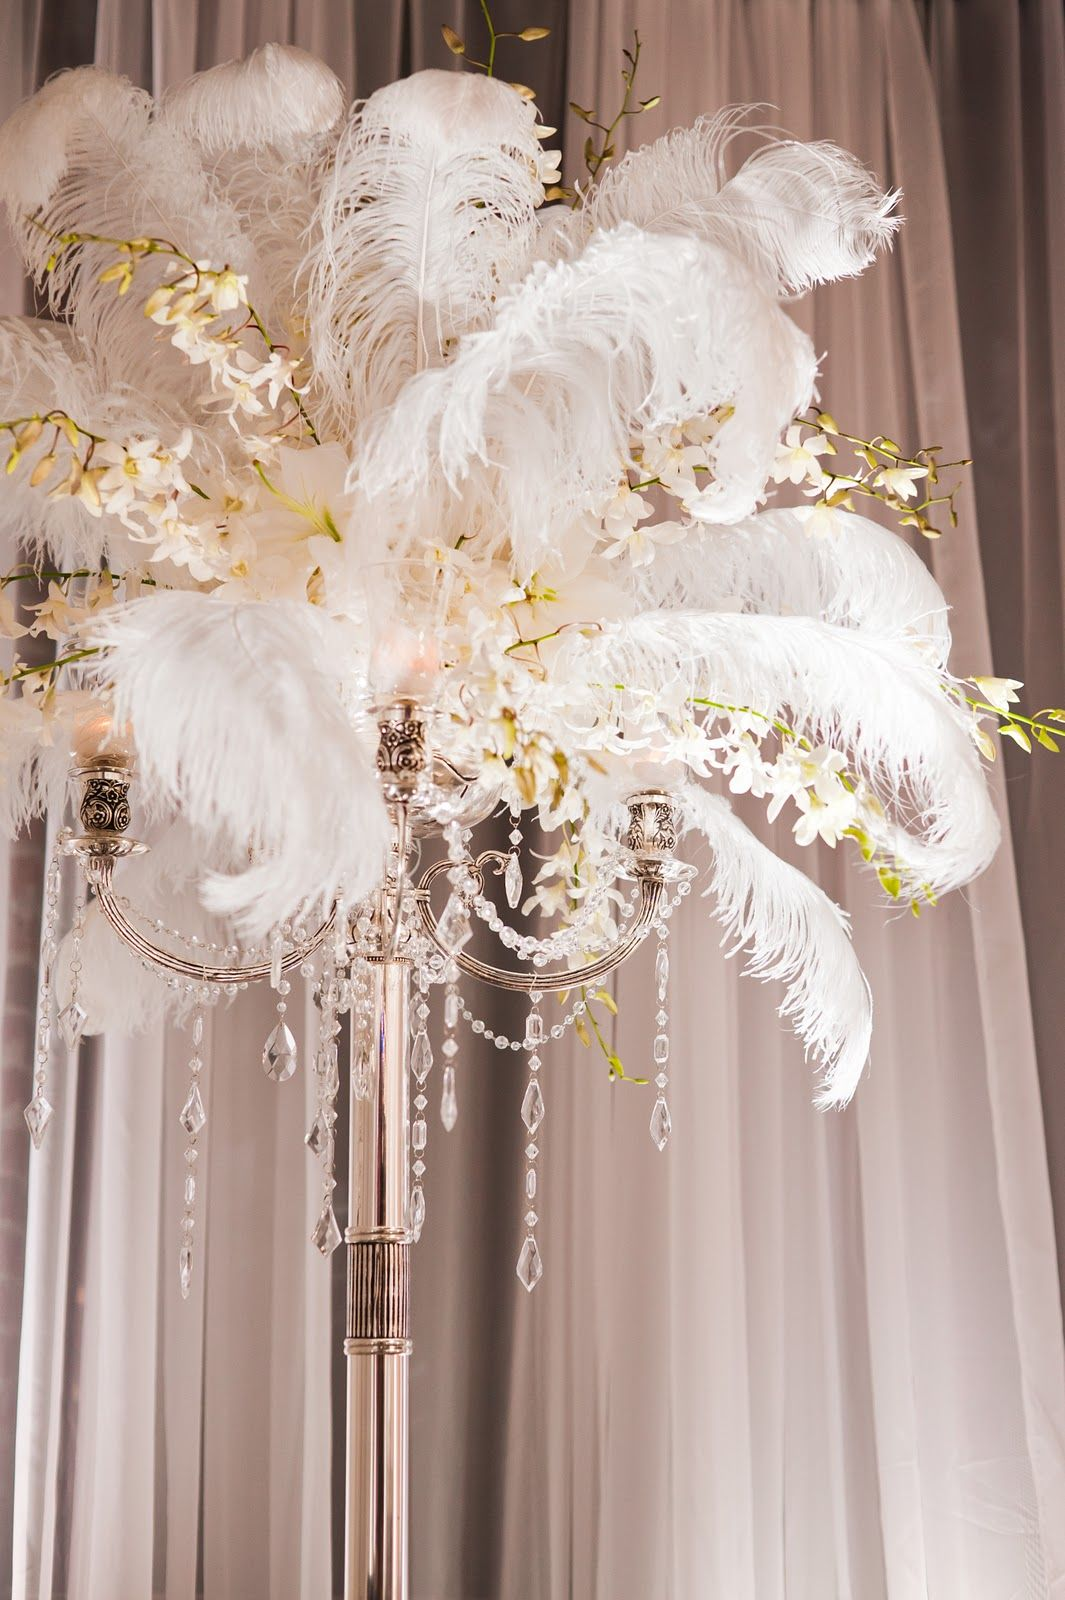 Google Image Result for http://littlebrownbride.files.wordpress.com/2012/01/cloud-9-anna-be-a-design-resource-orchid-feather-centerpiece-crystals.jpg